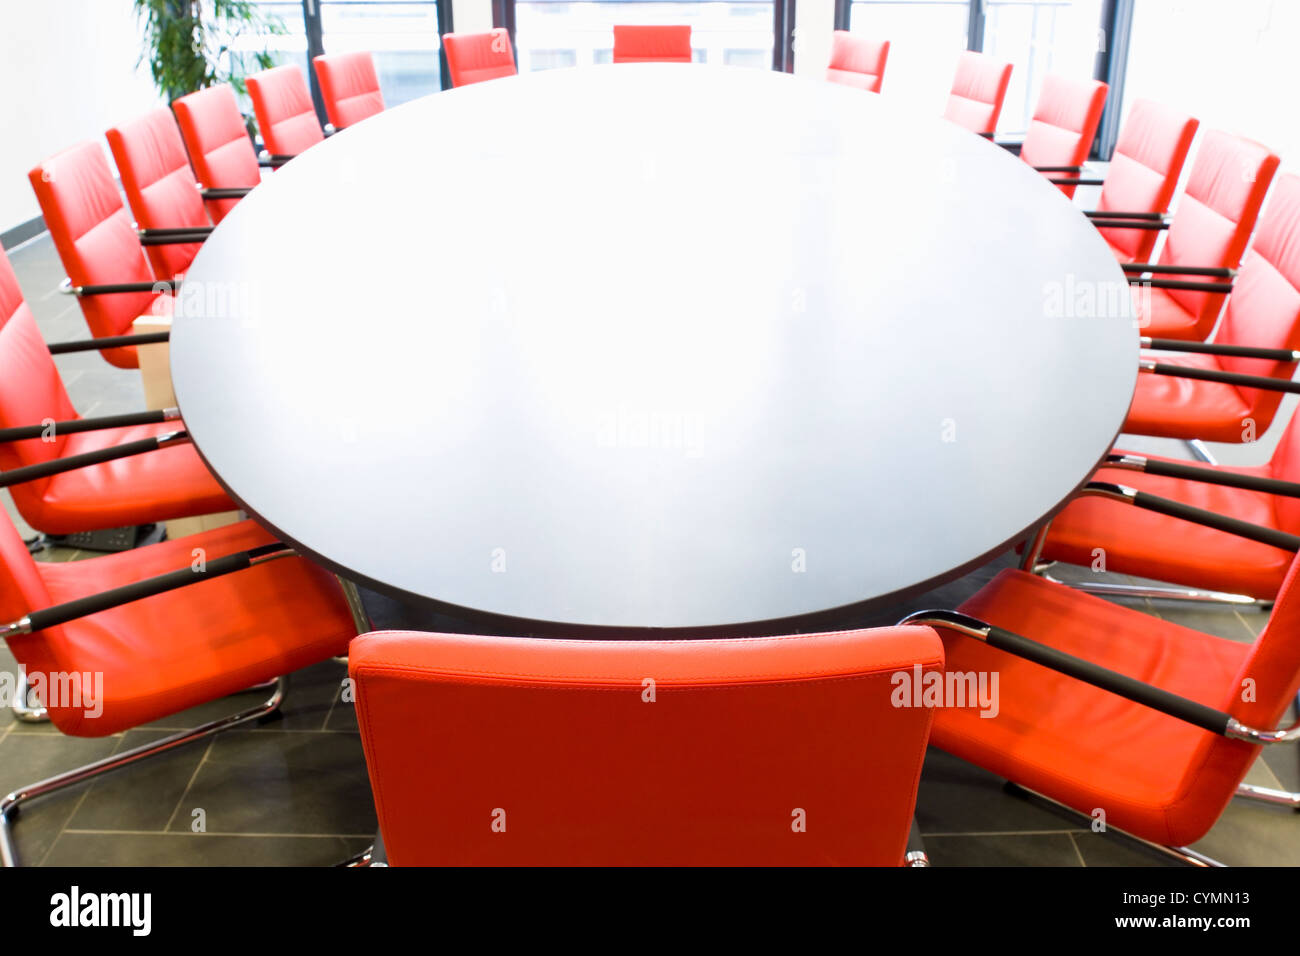 Oval Conference Table Stock Photos Oval Conference Table Stock - Red conference table